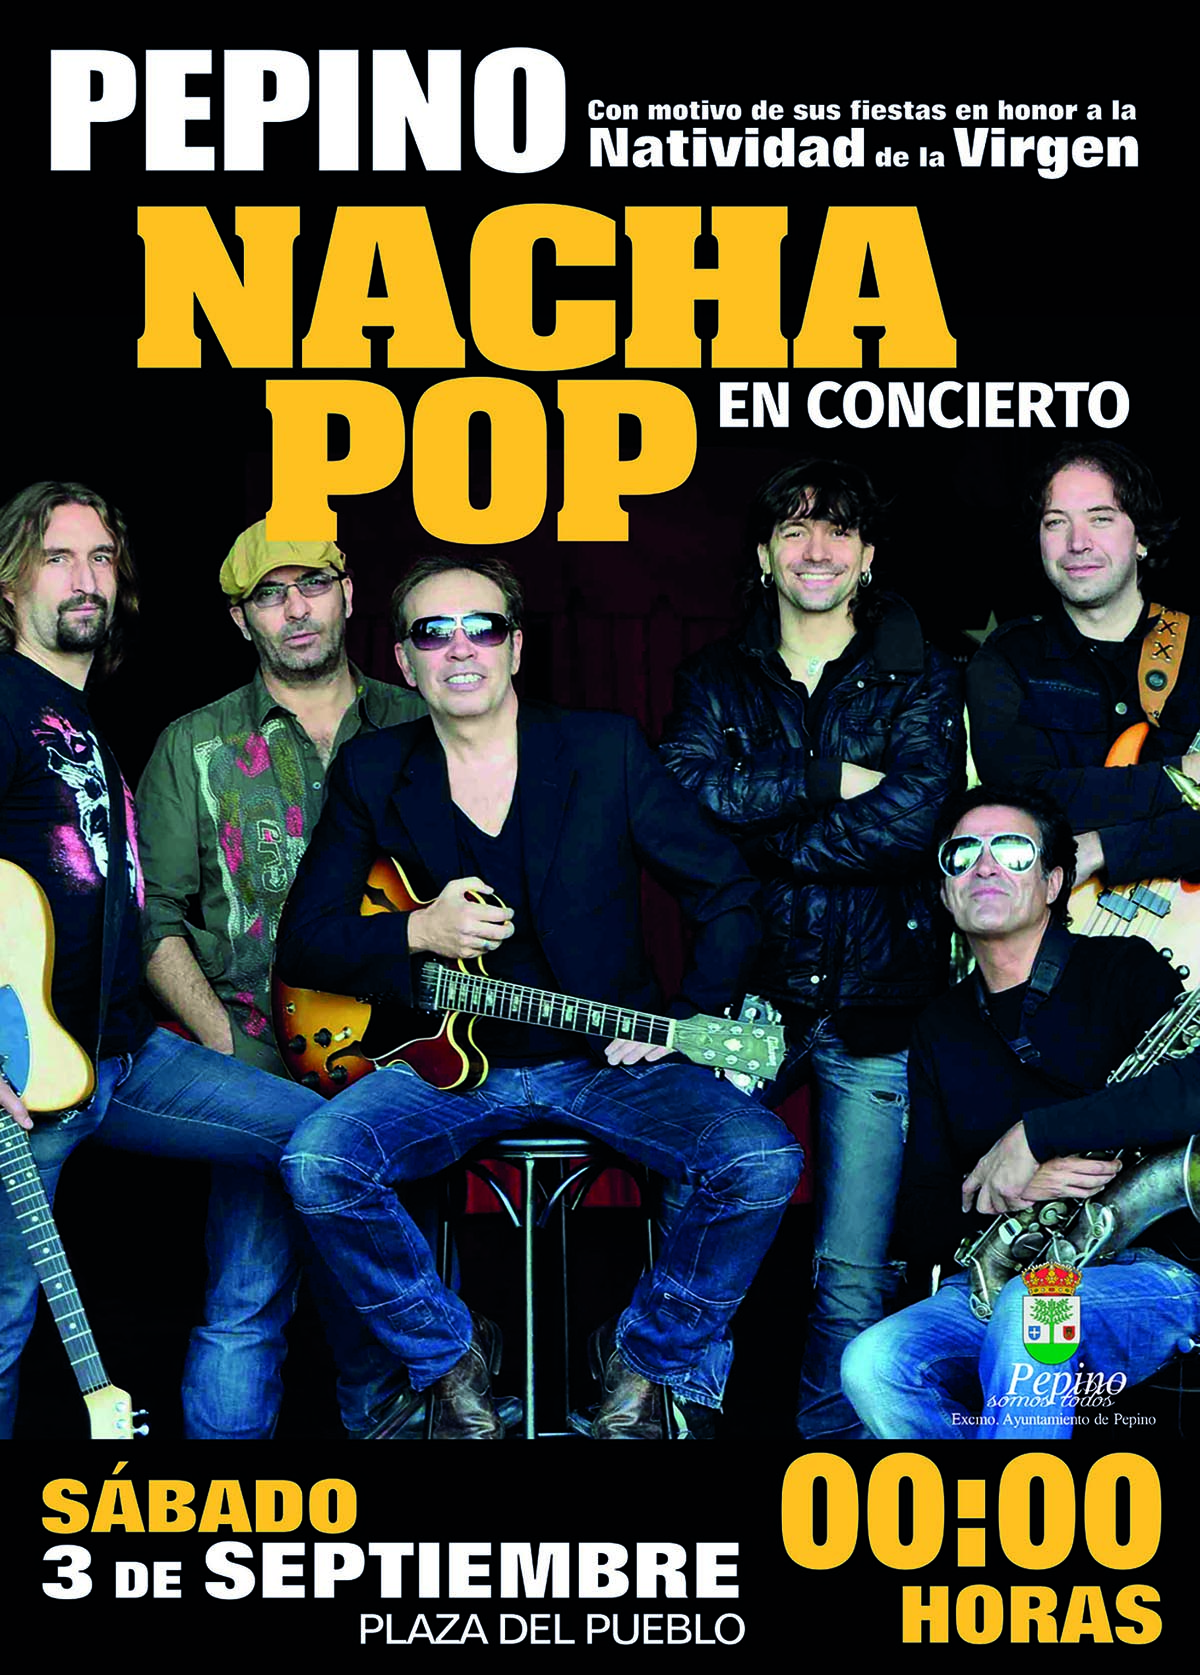 cartel nacha pop pepino